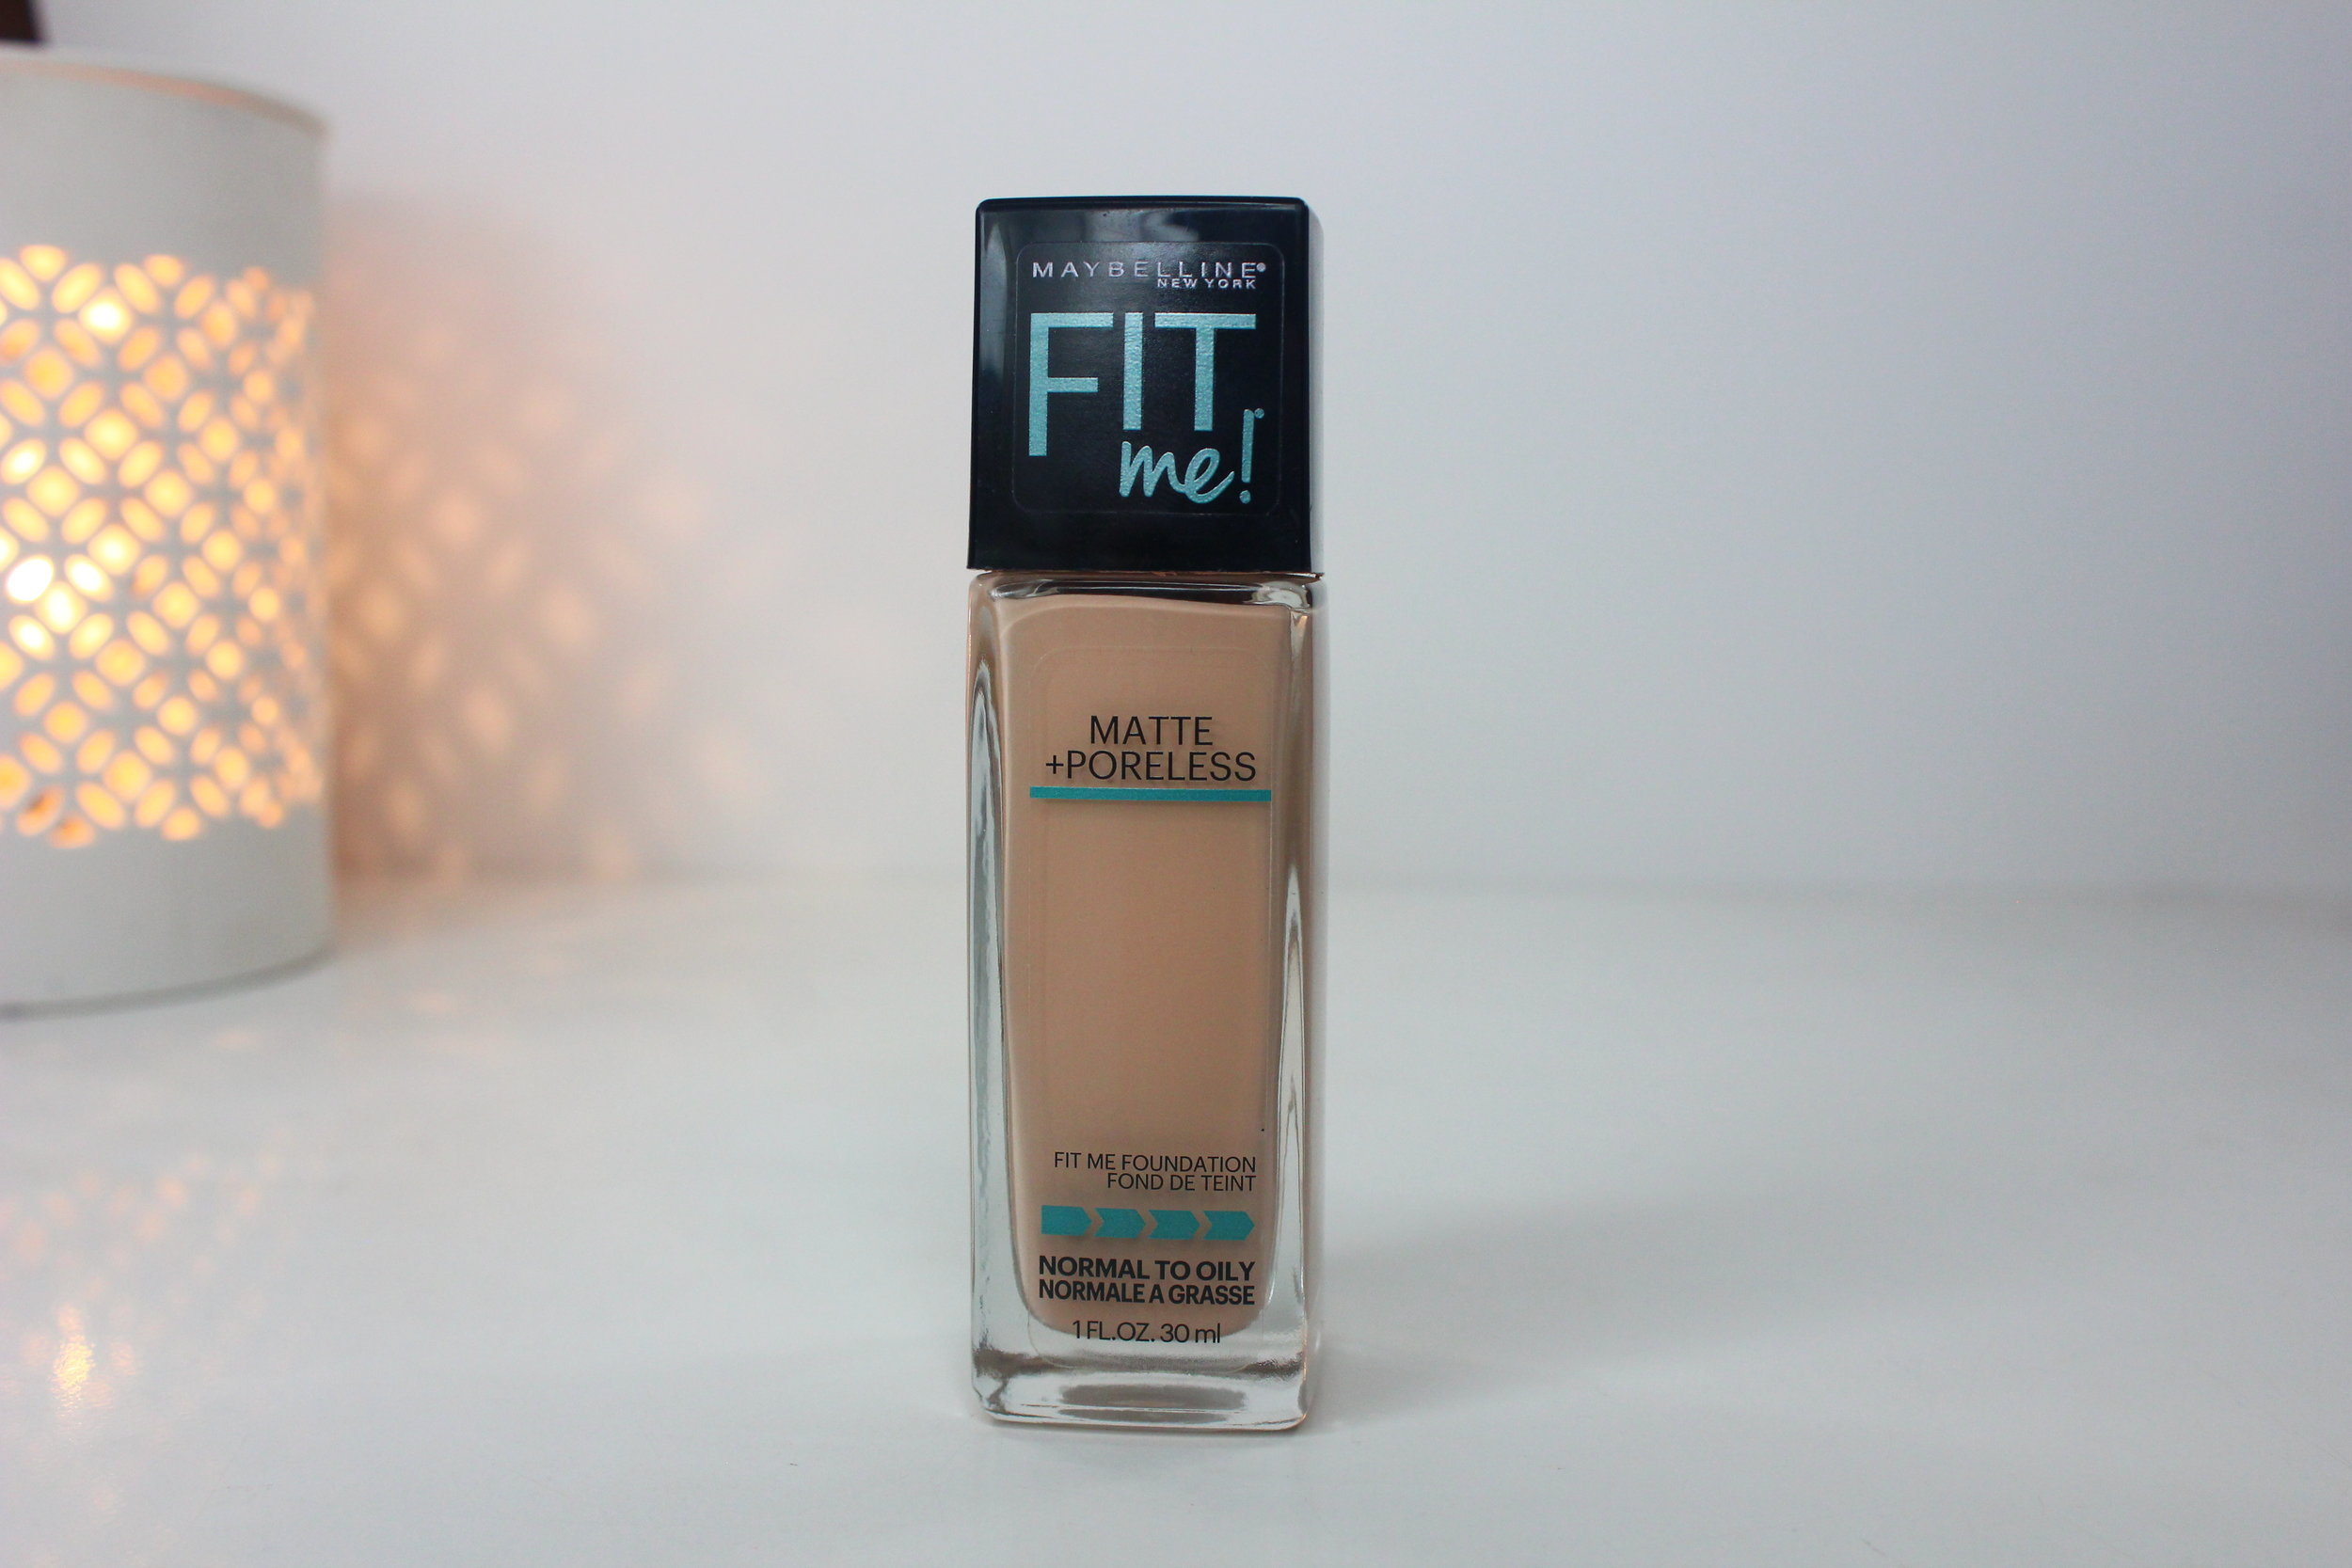 Maybelline Fit Me Matte & Poreless review